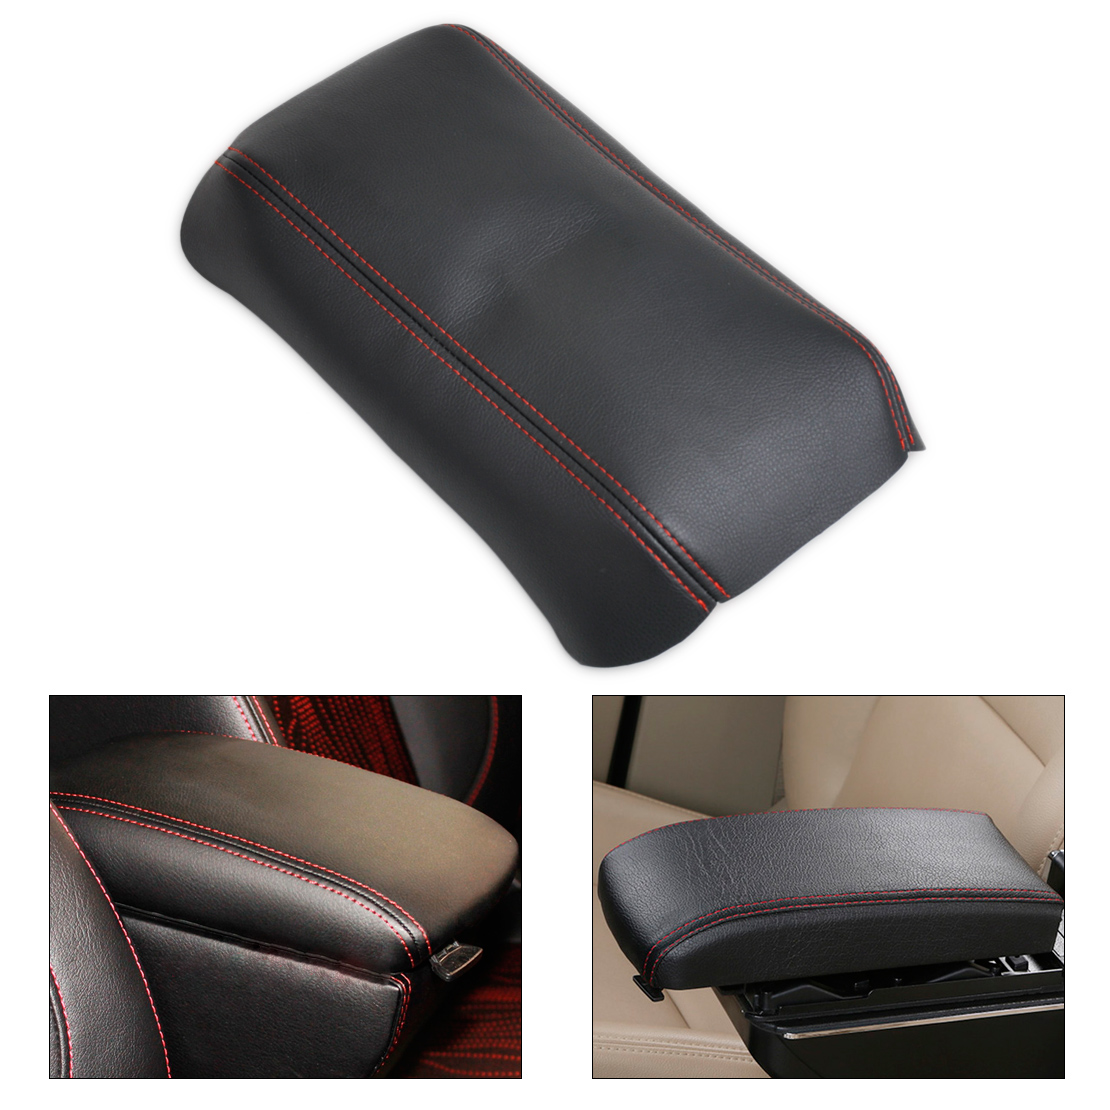 DWCX Black Leather with Red Stitching Black Front Console Lid Armrest <font><b>Cover</b></font> Decor for <font><b>Honda</b></font> <font><b>Accord</b></font> 2003 2004 2005 2006 <font><b>2007</b></font> DIY image